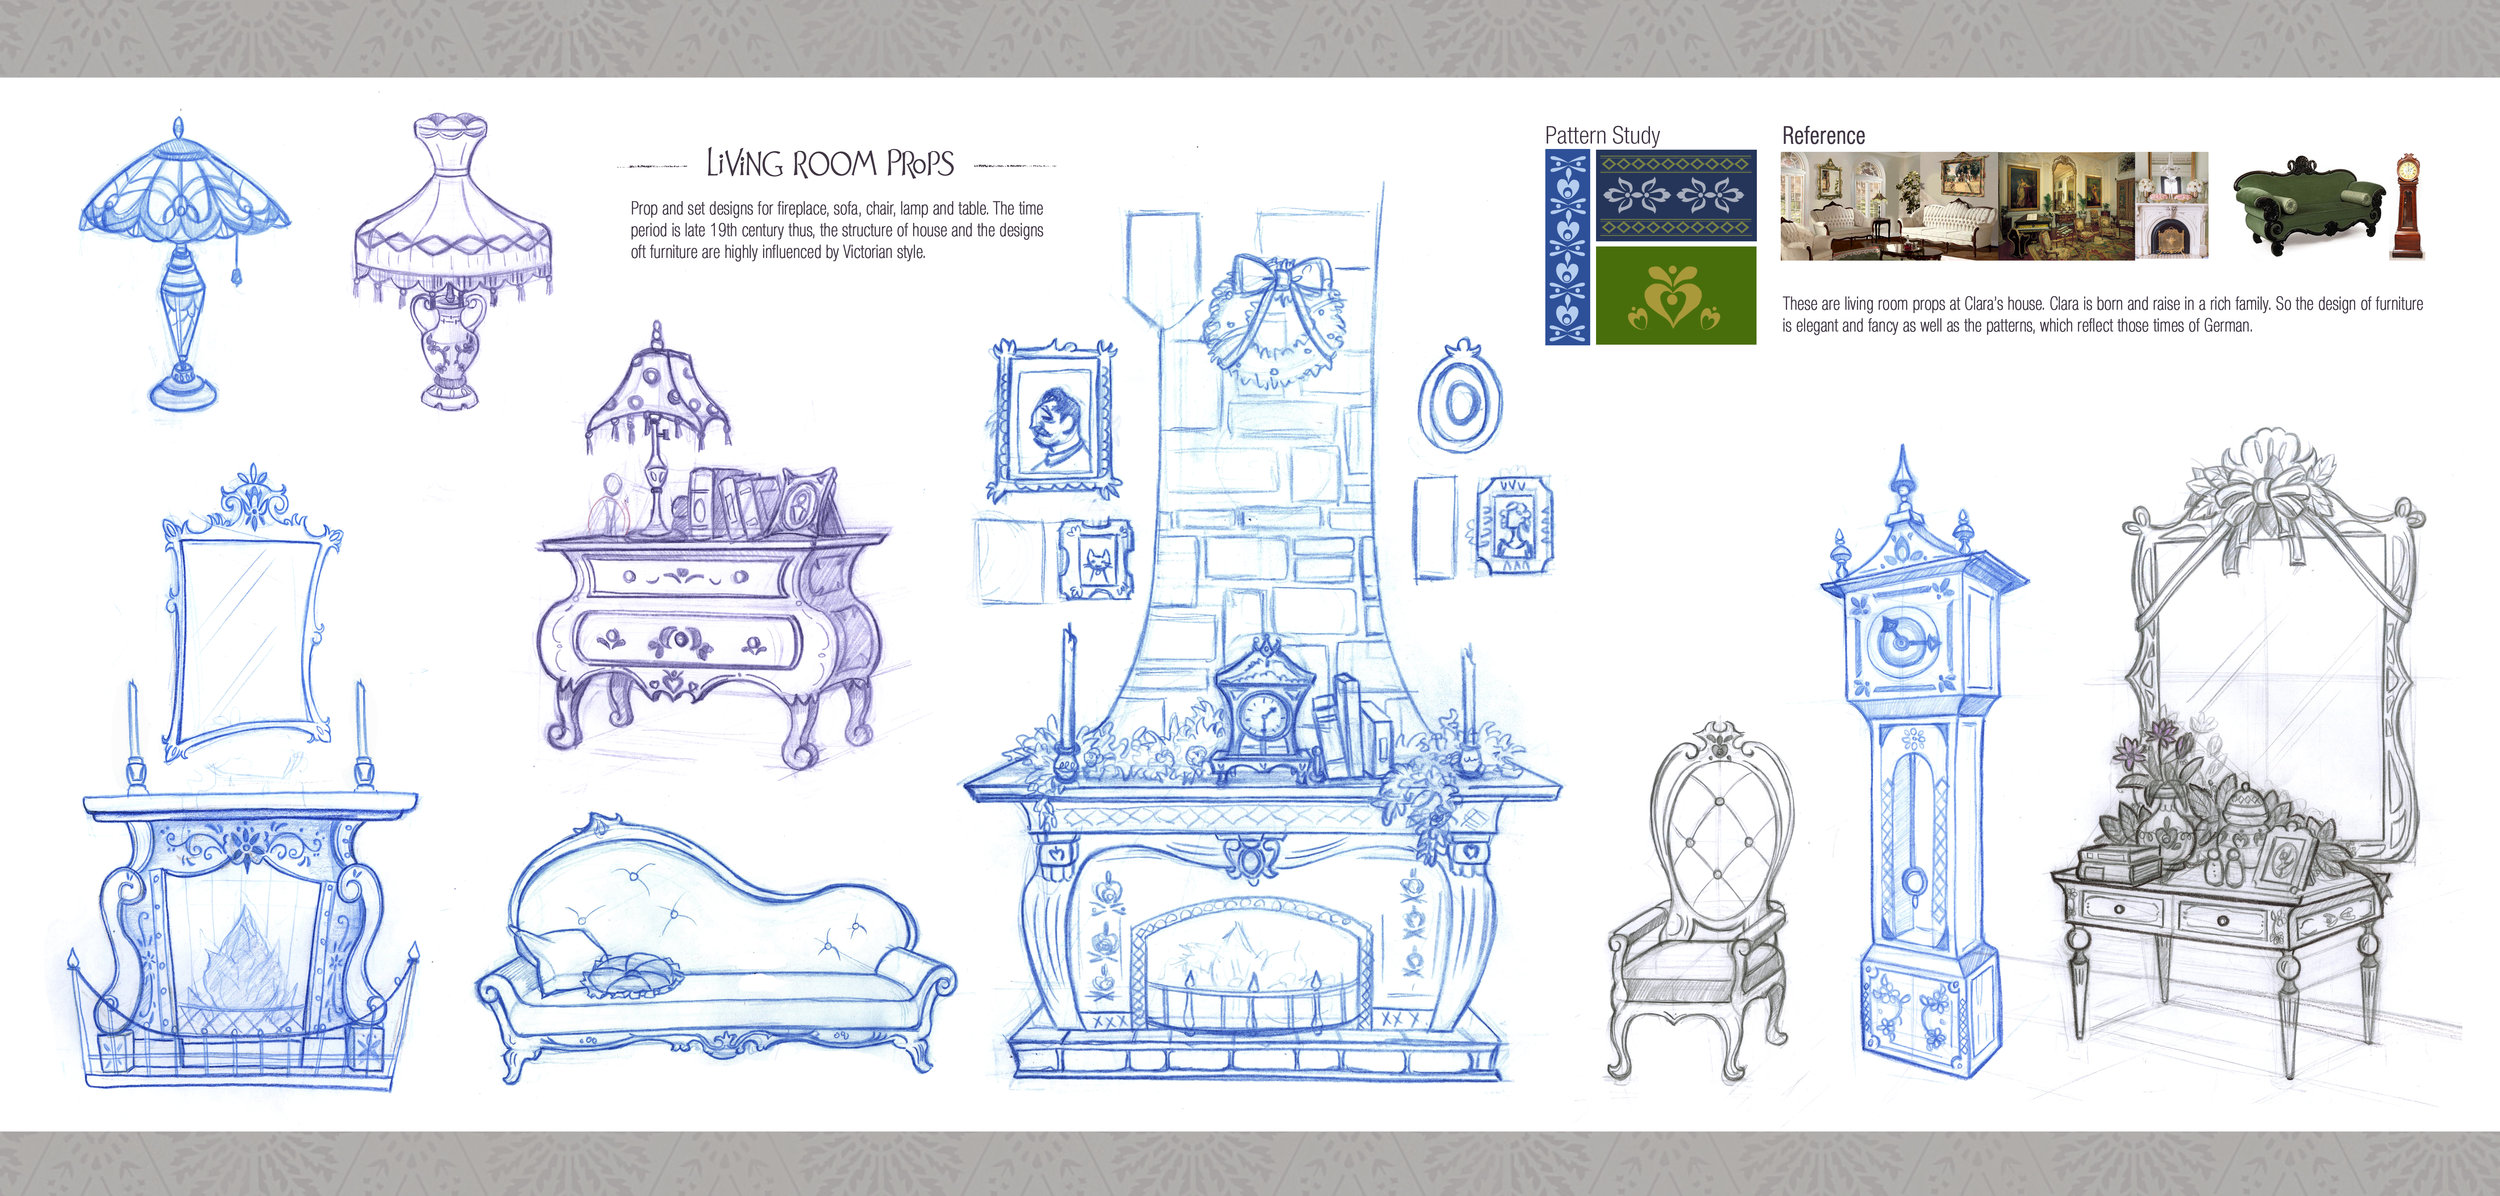 Prop_Living room_drawing_Soyun Park.jpg